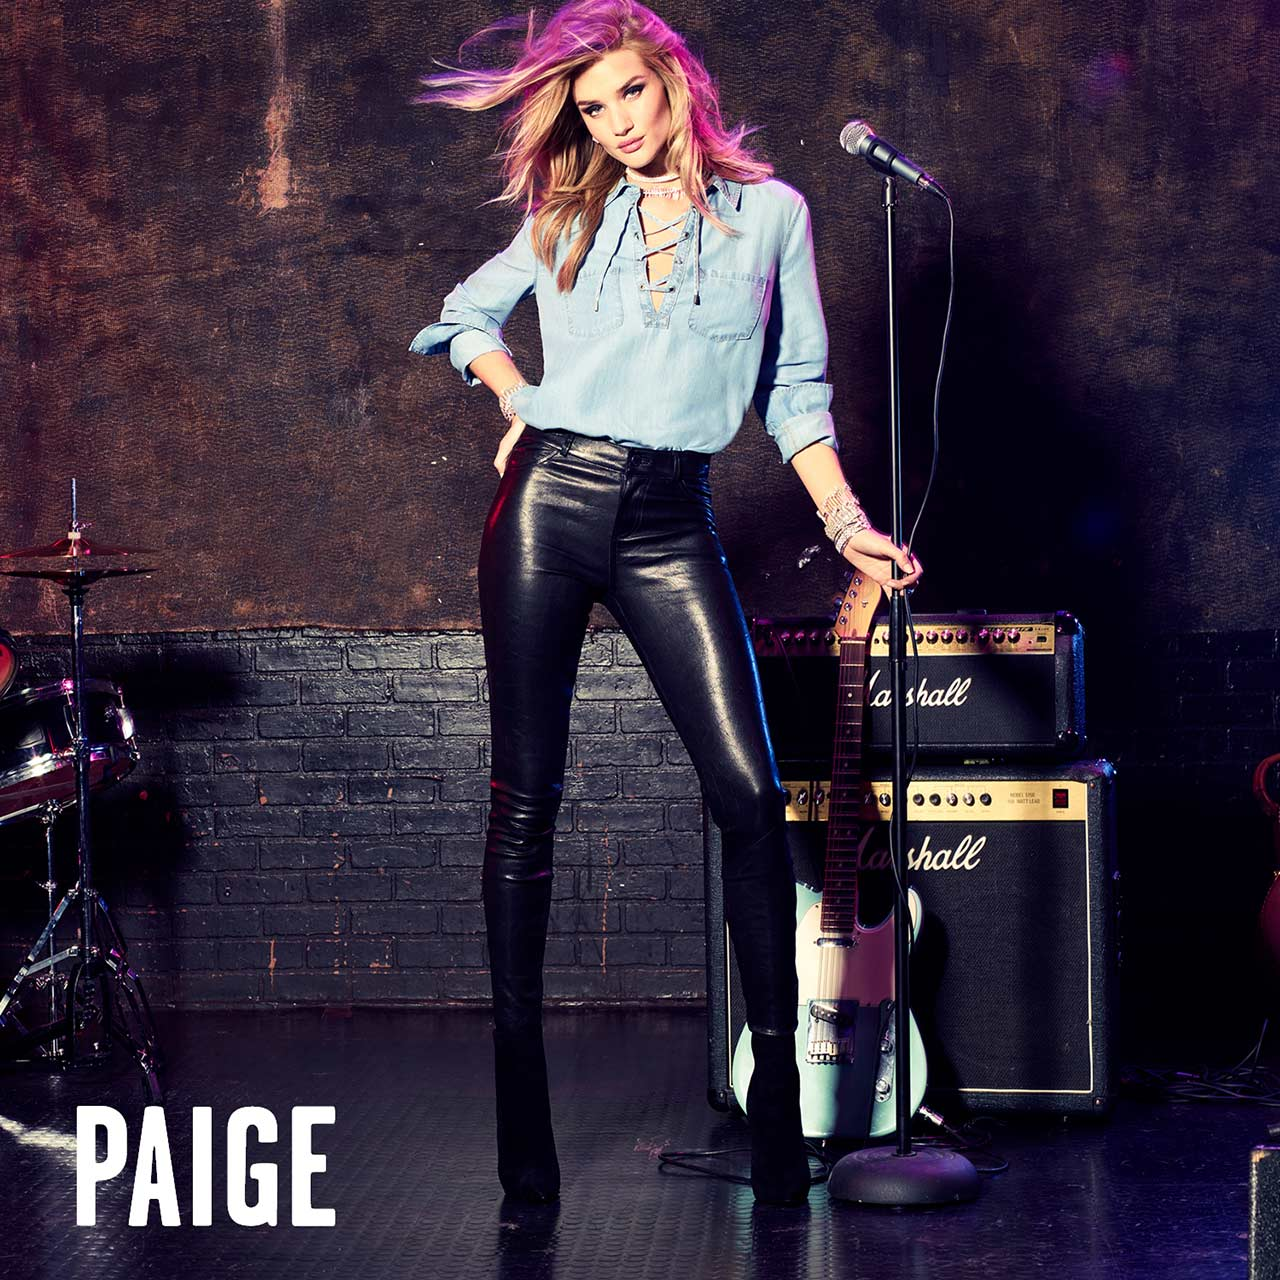 Paige-Rosie-Huntington-Whiteley-Fall-16-Insta-Images2